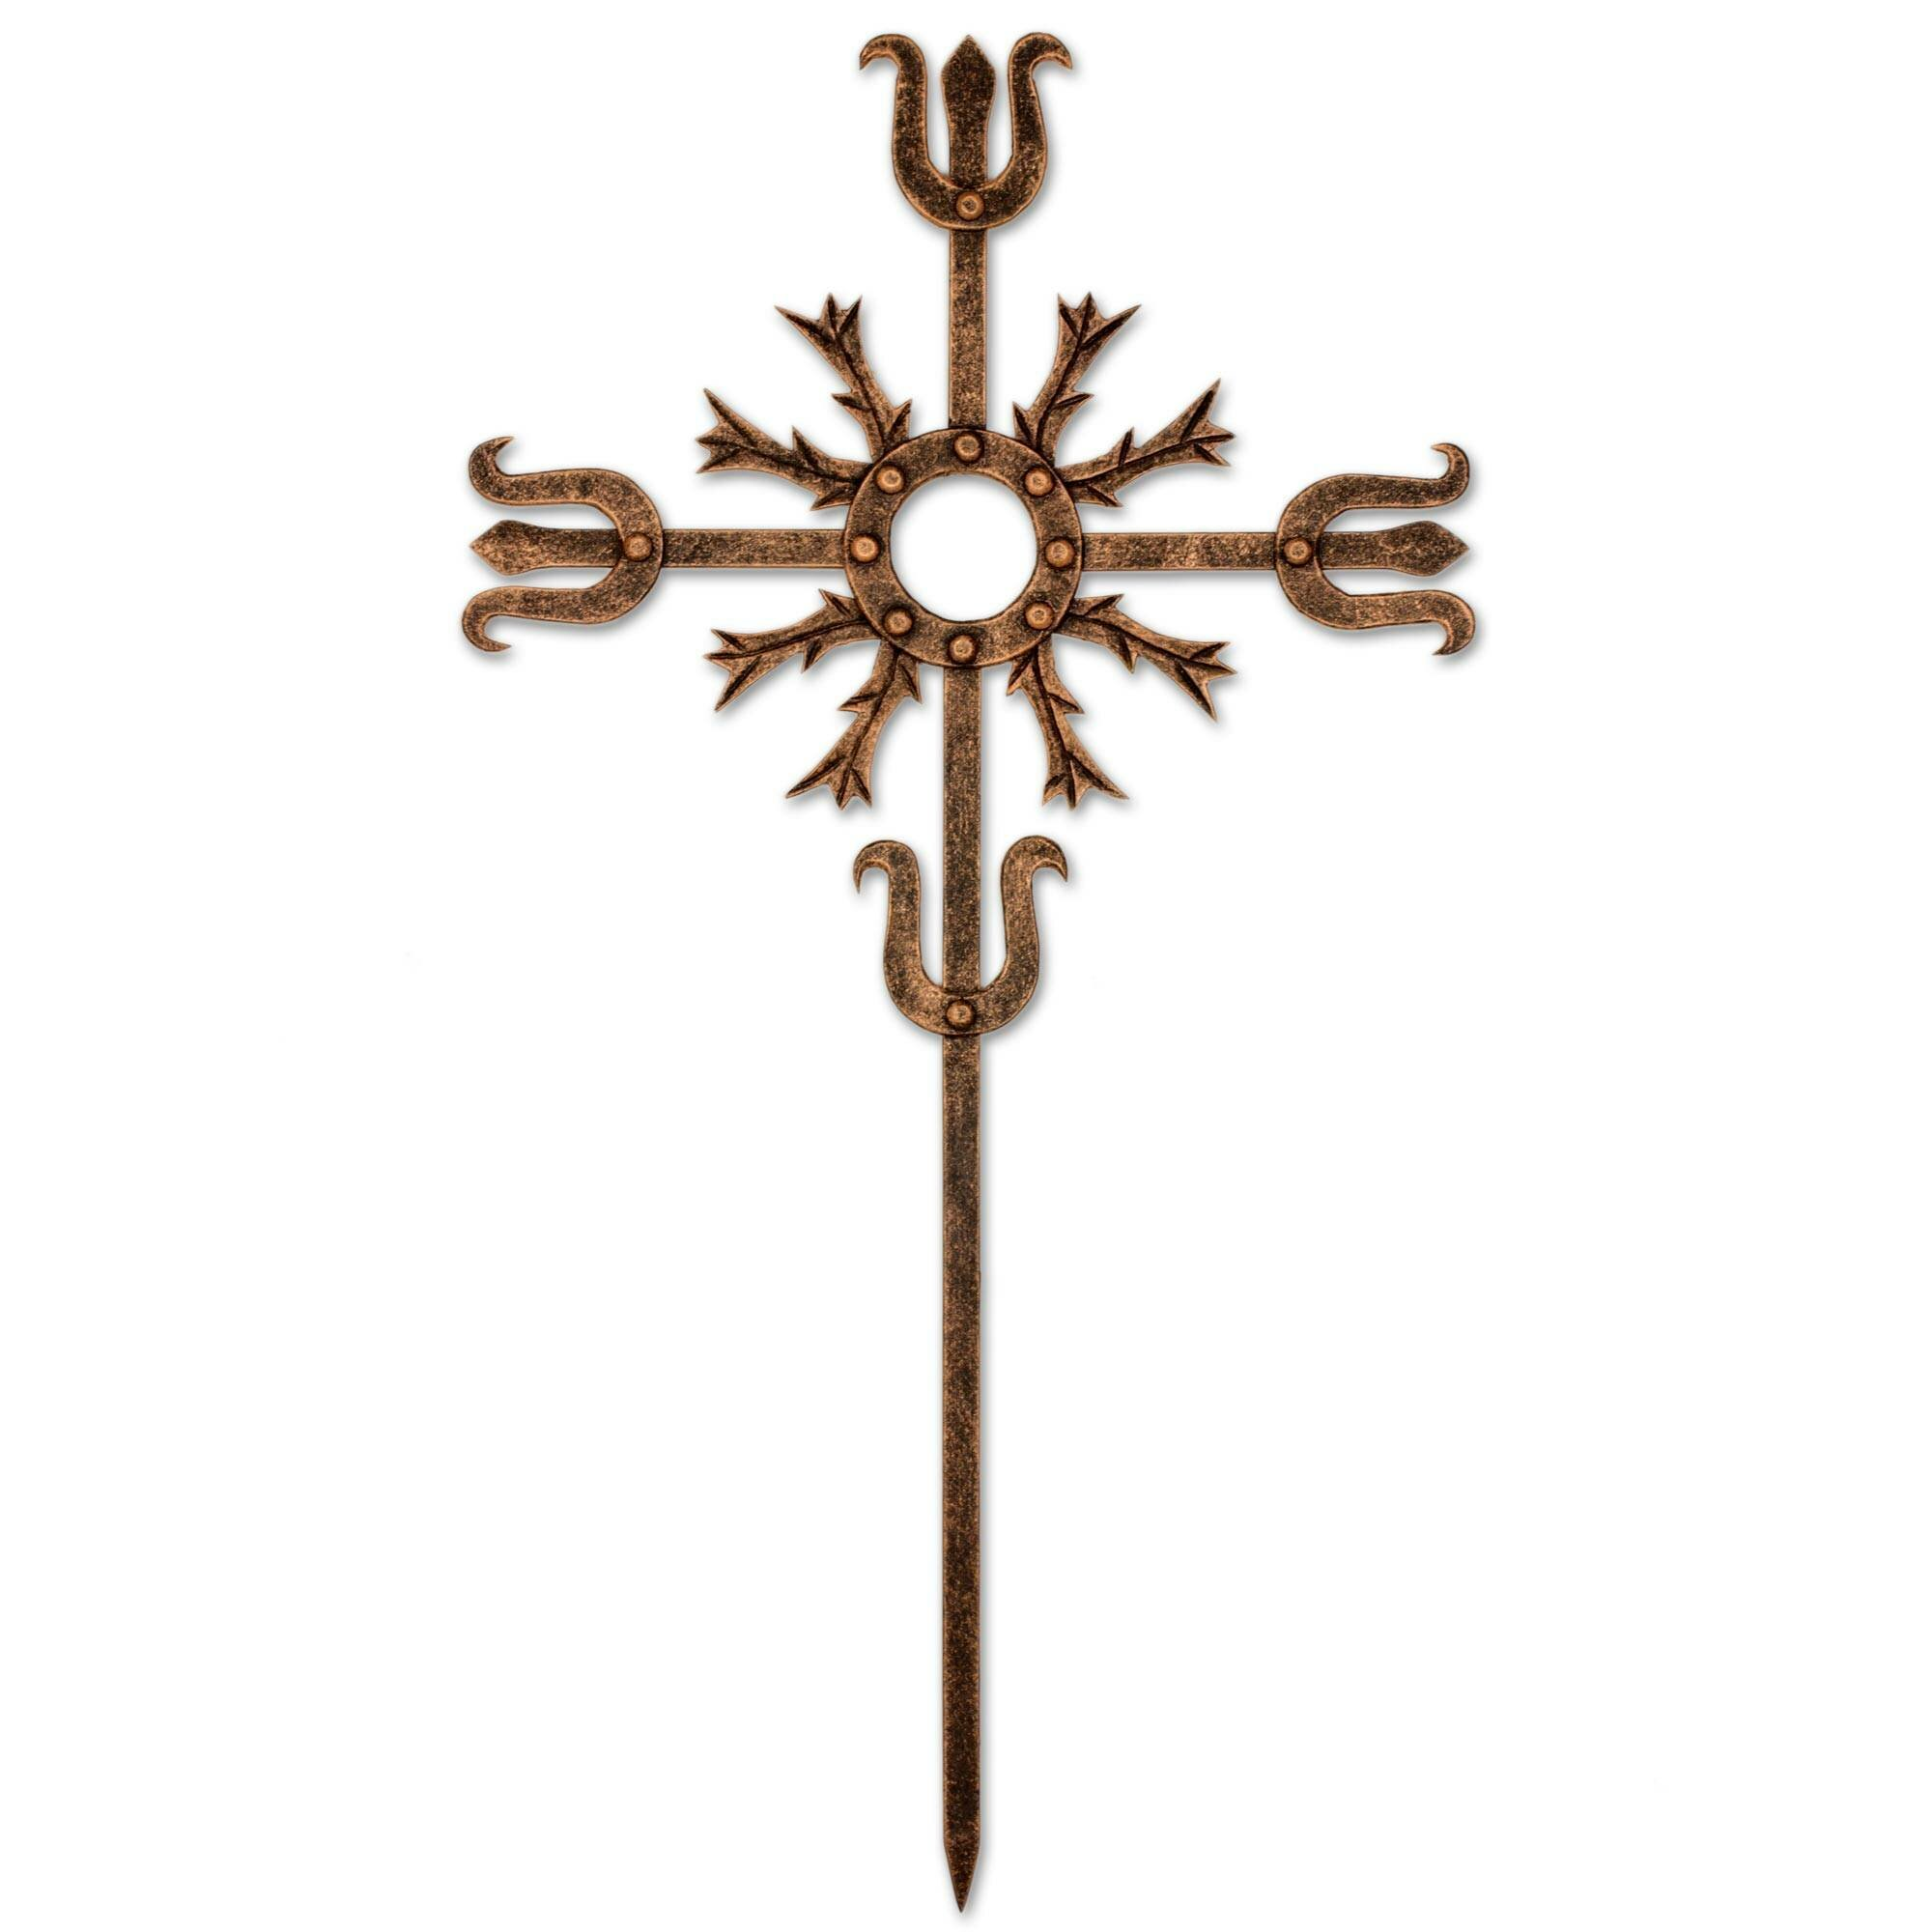 Bloomsbury Market Love Energy Wrought Iron Wall Cross Wall Decor